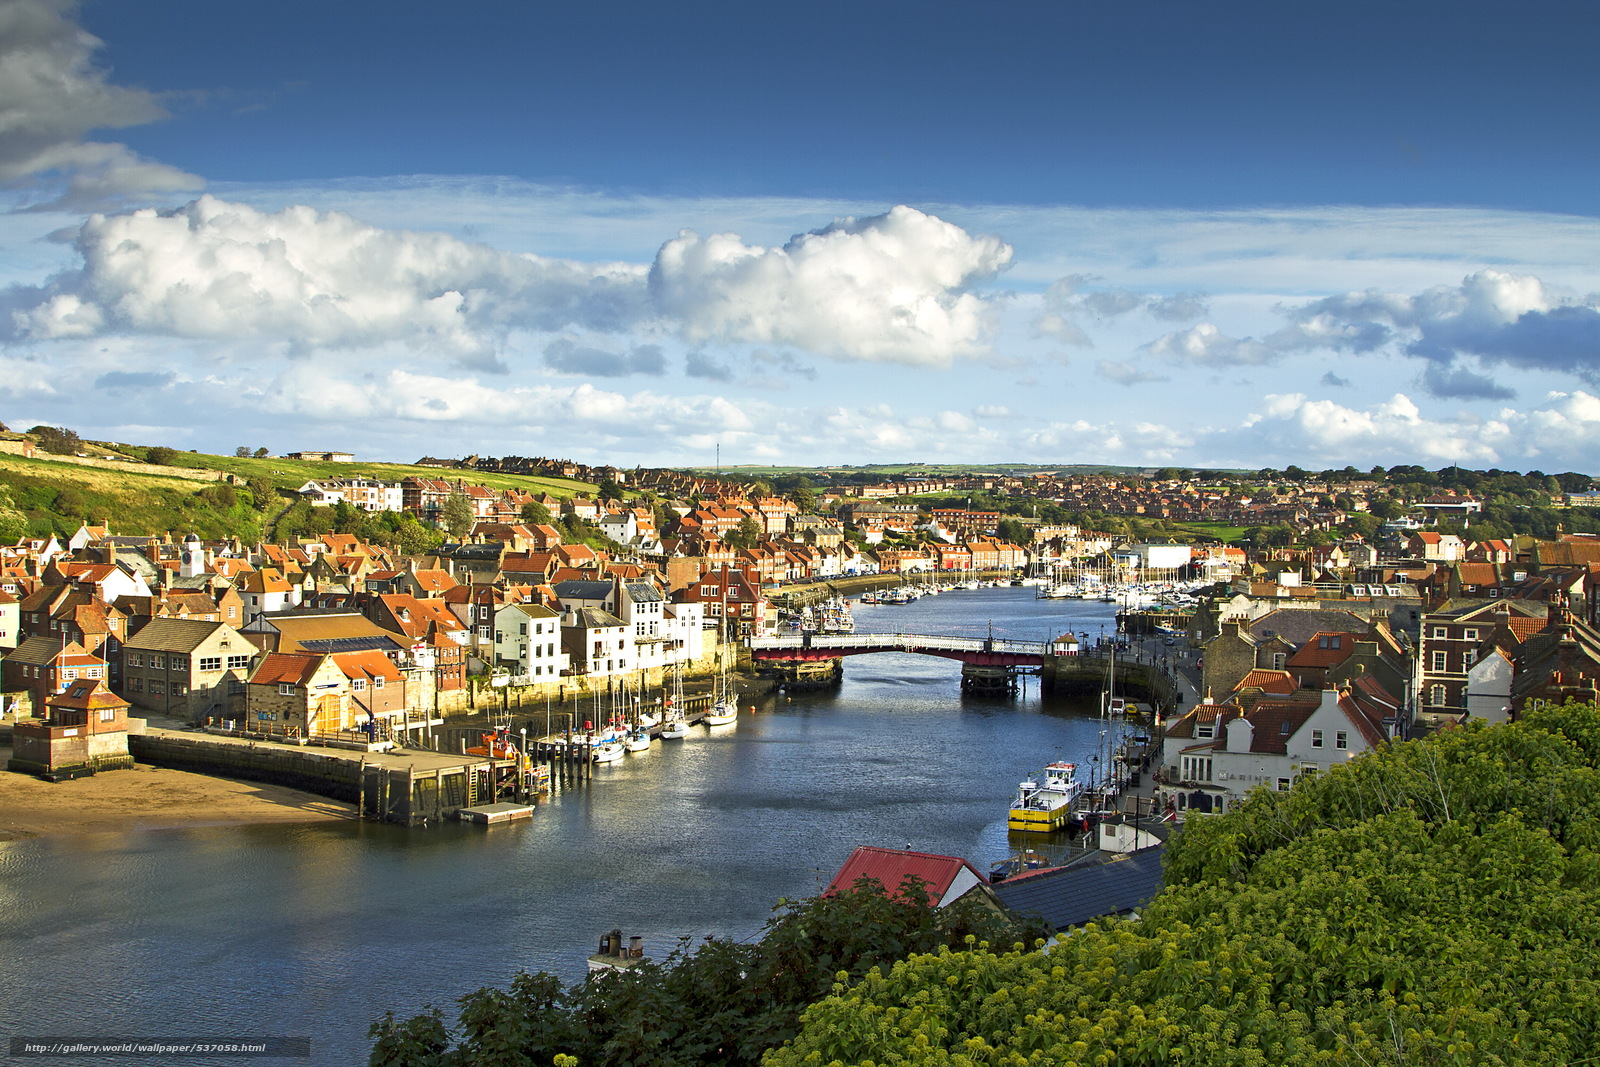 Download wallpaper Whitby, North Yorkshire, england free desktop wallpaper in the resolution 3597x2398 — picture №537058